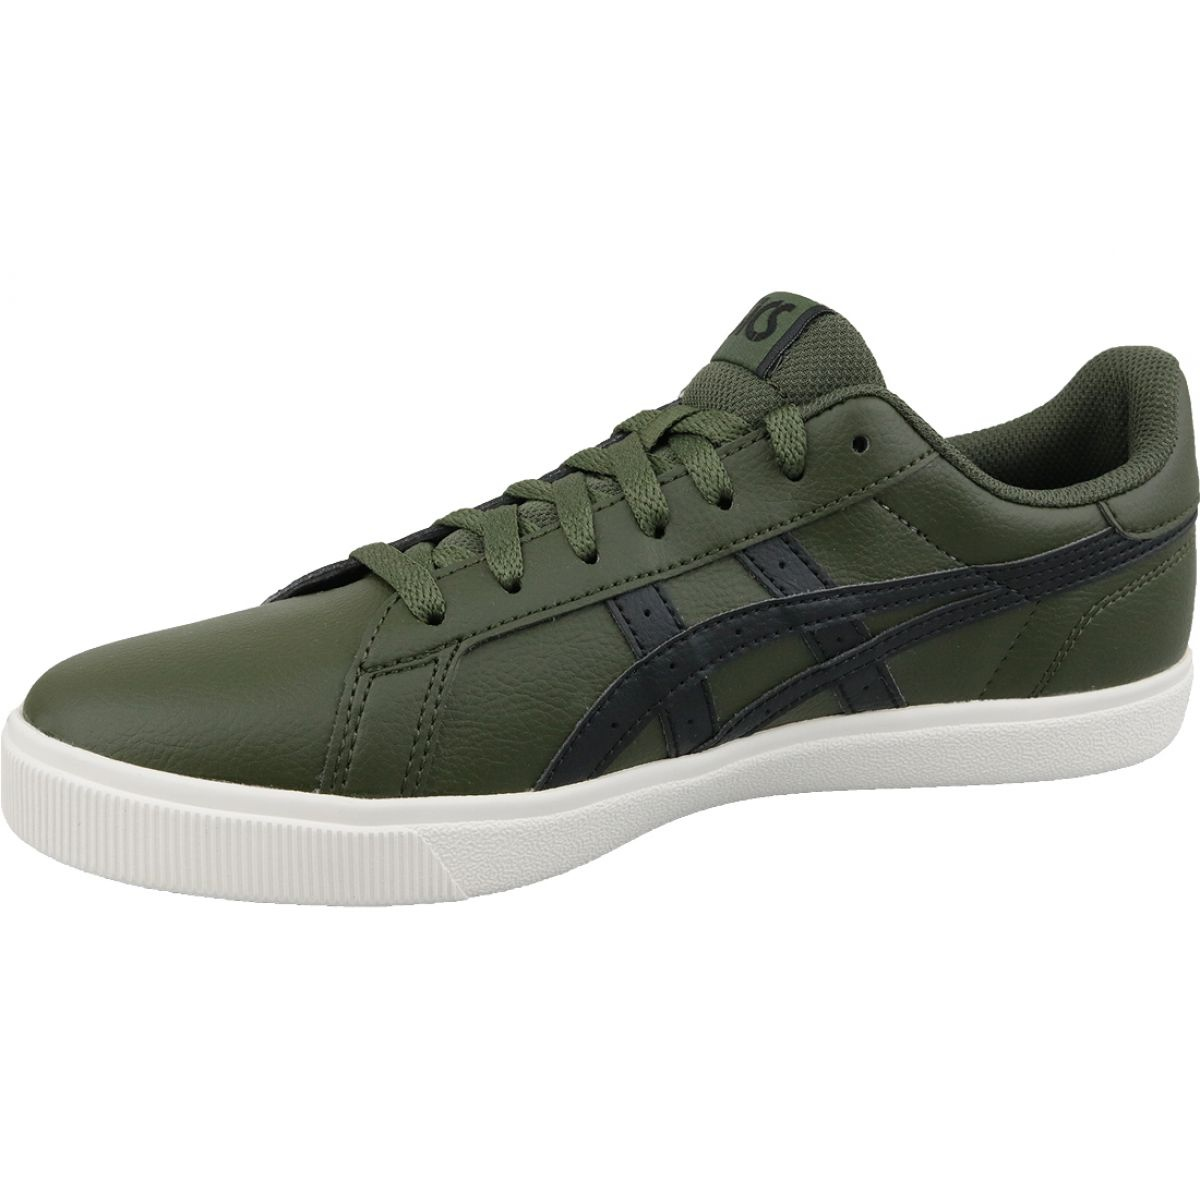 Details about Asics Classic Ct M 1191A165 300 shoes green